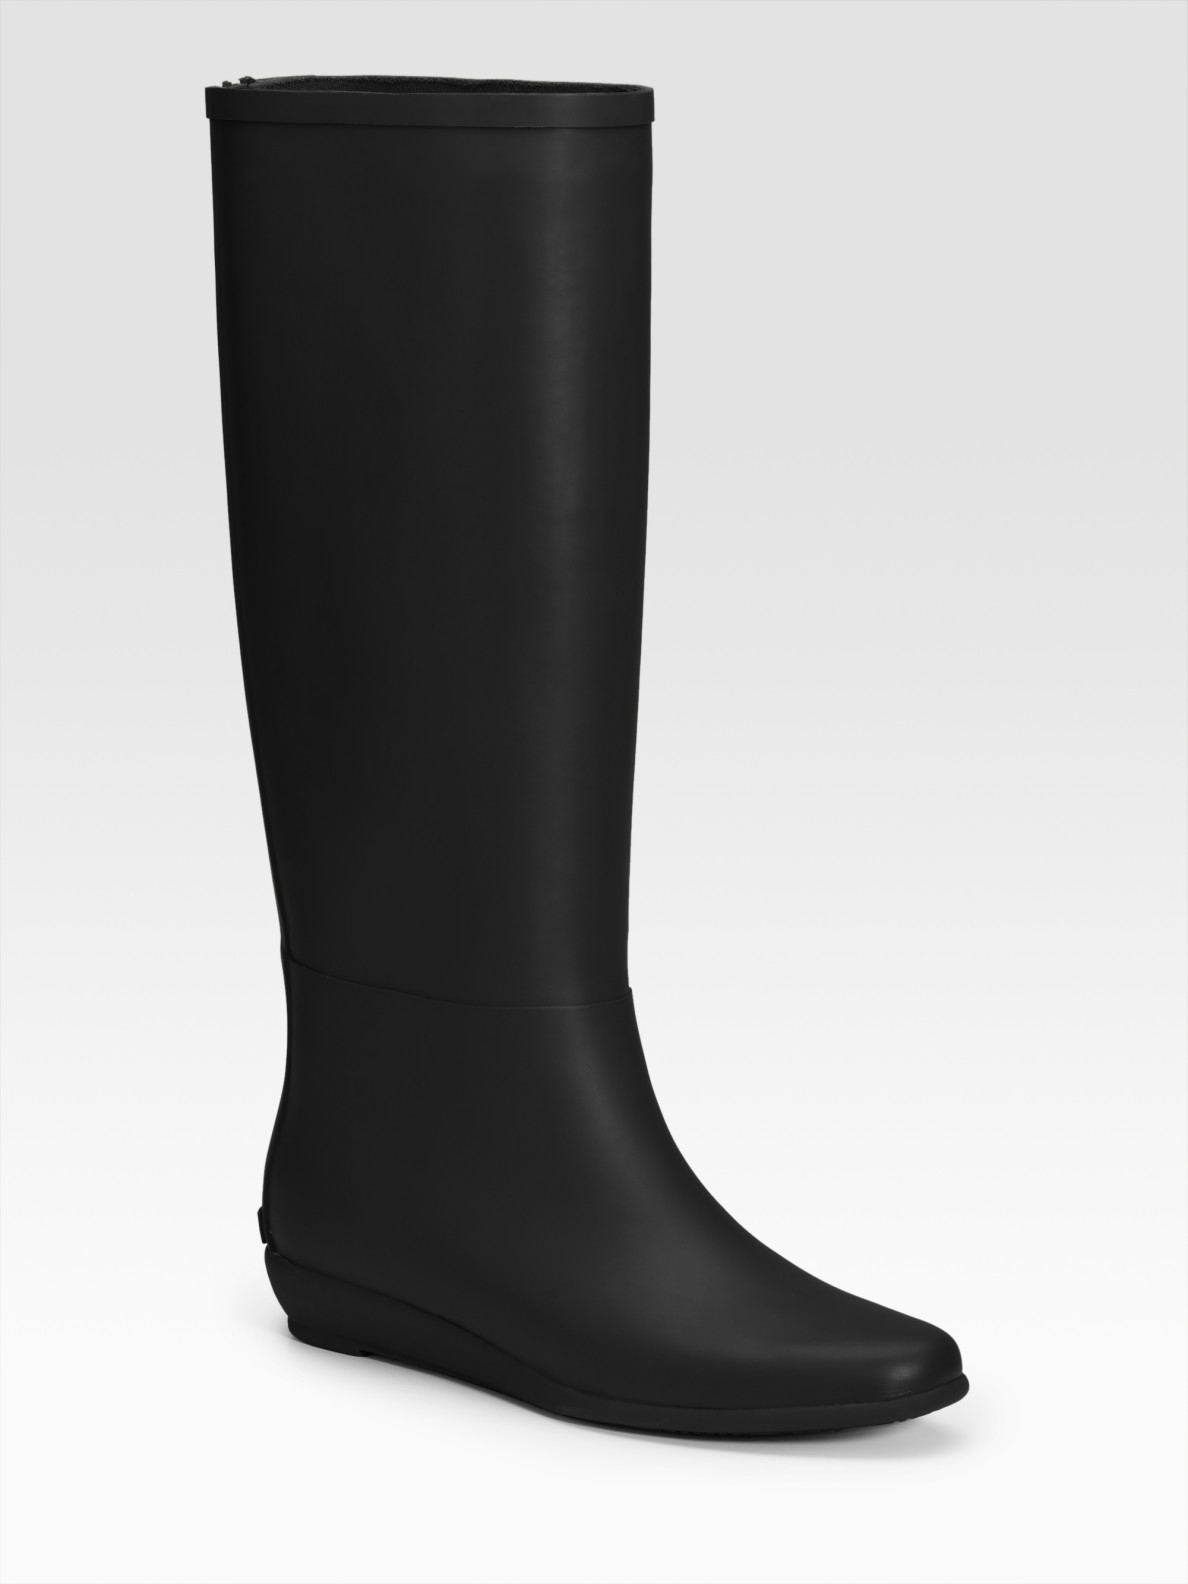 loeffler randall rubber wedge boots in black lyst